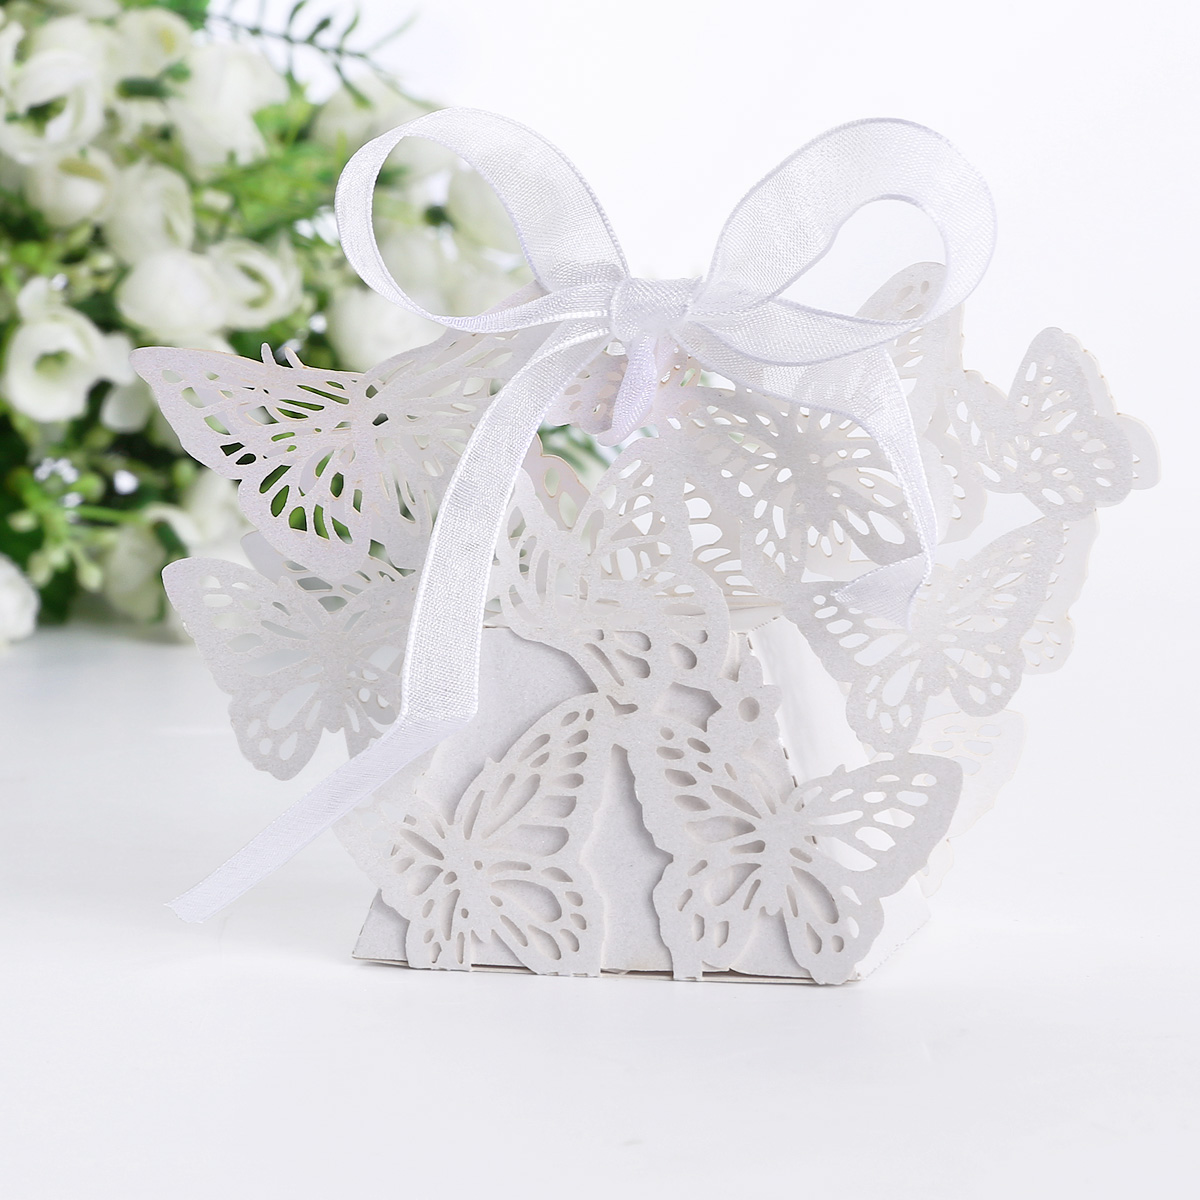 Wedding Favor Boxes White : White butterfly laser cut gift candy sweet boxes wedding